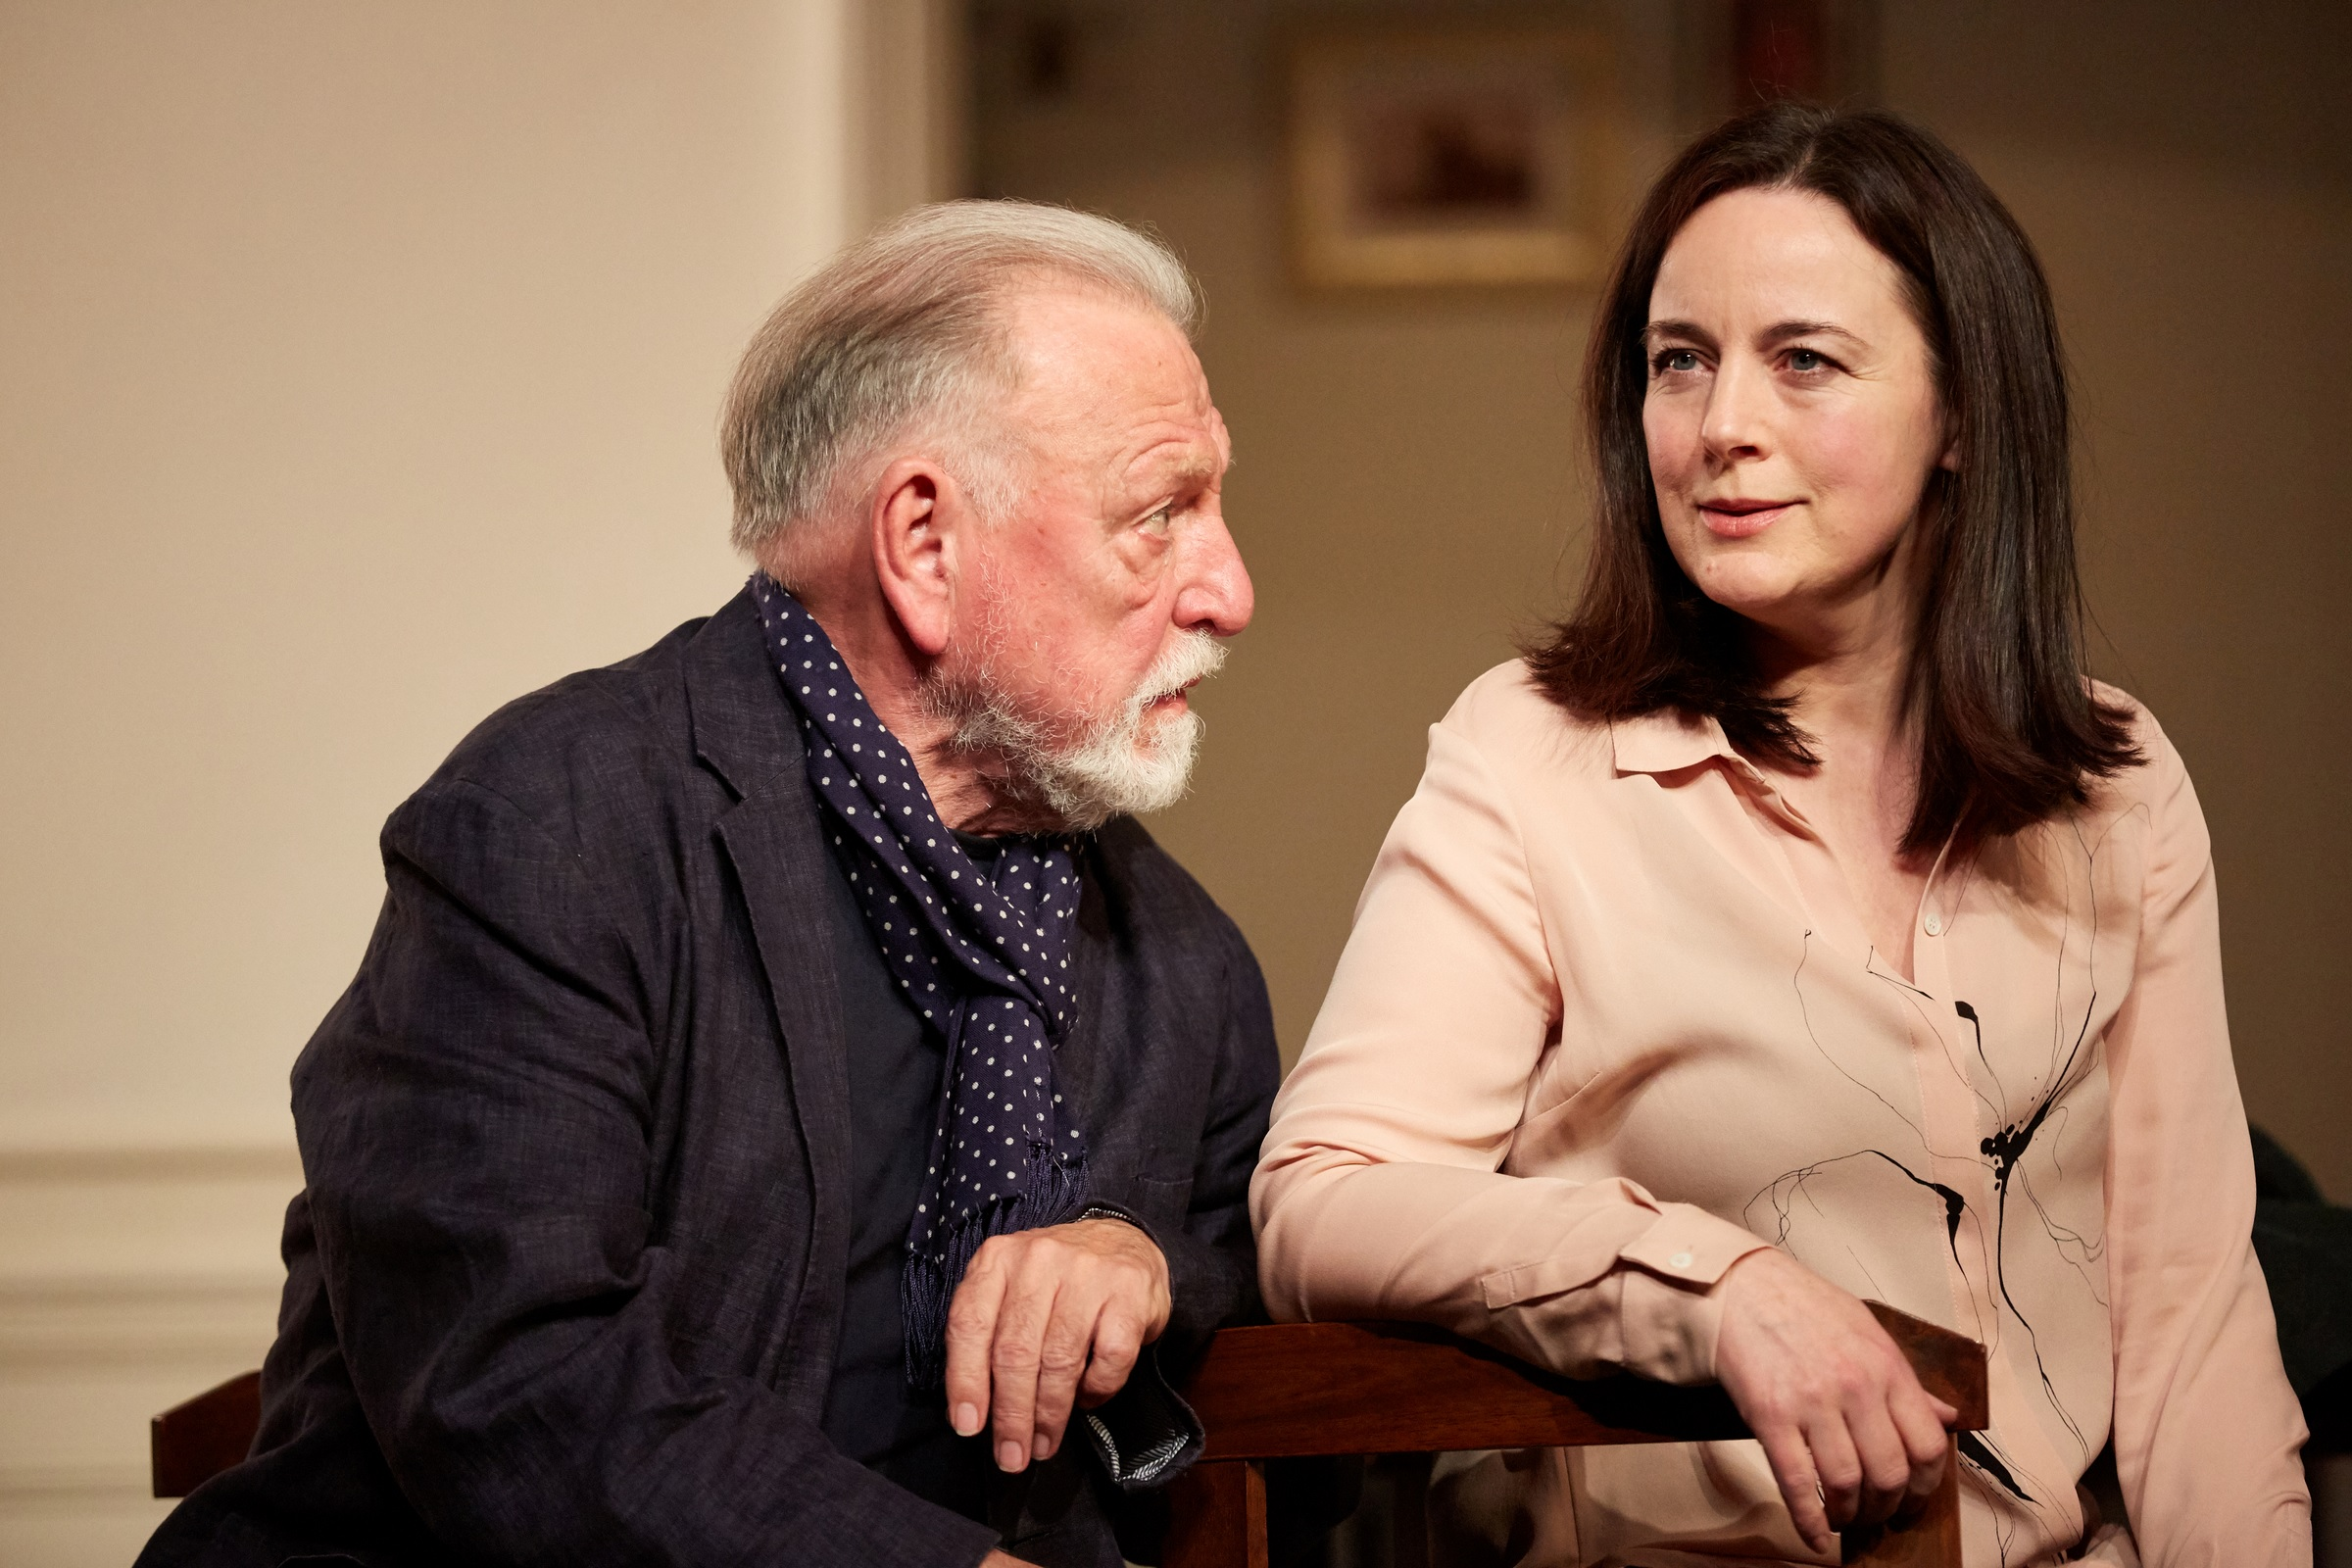 Kenneth Cranham & Amanda Drew in The Father Simon Annand